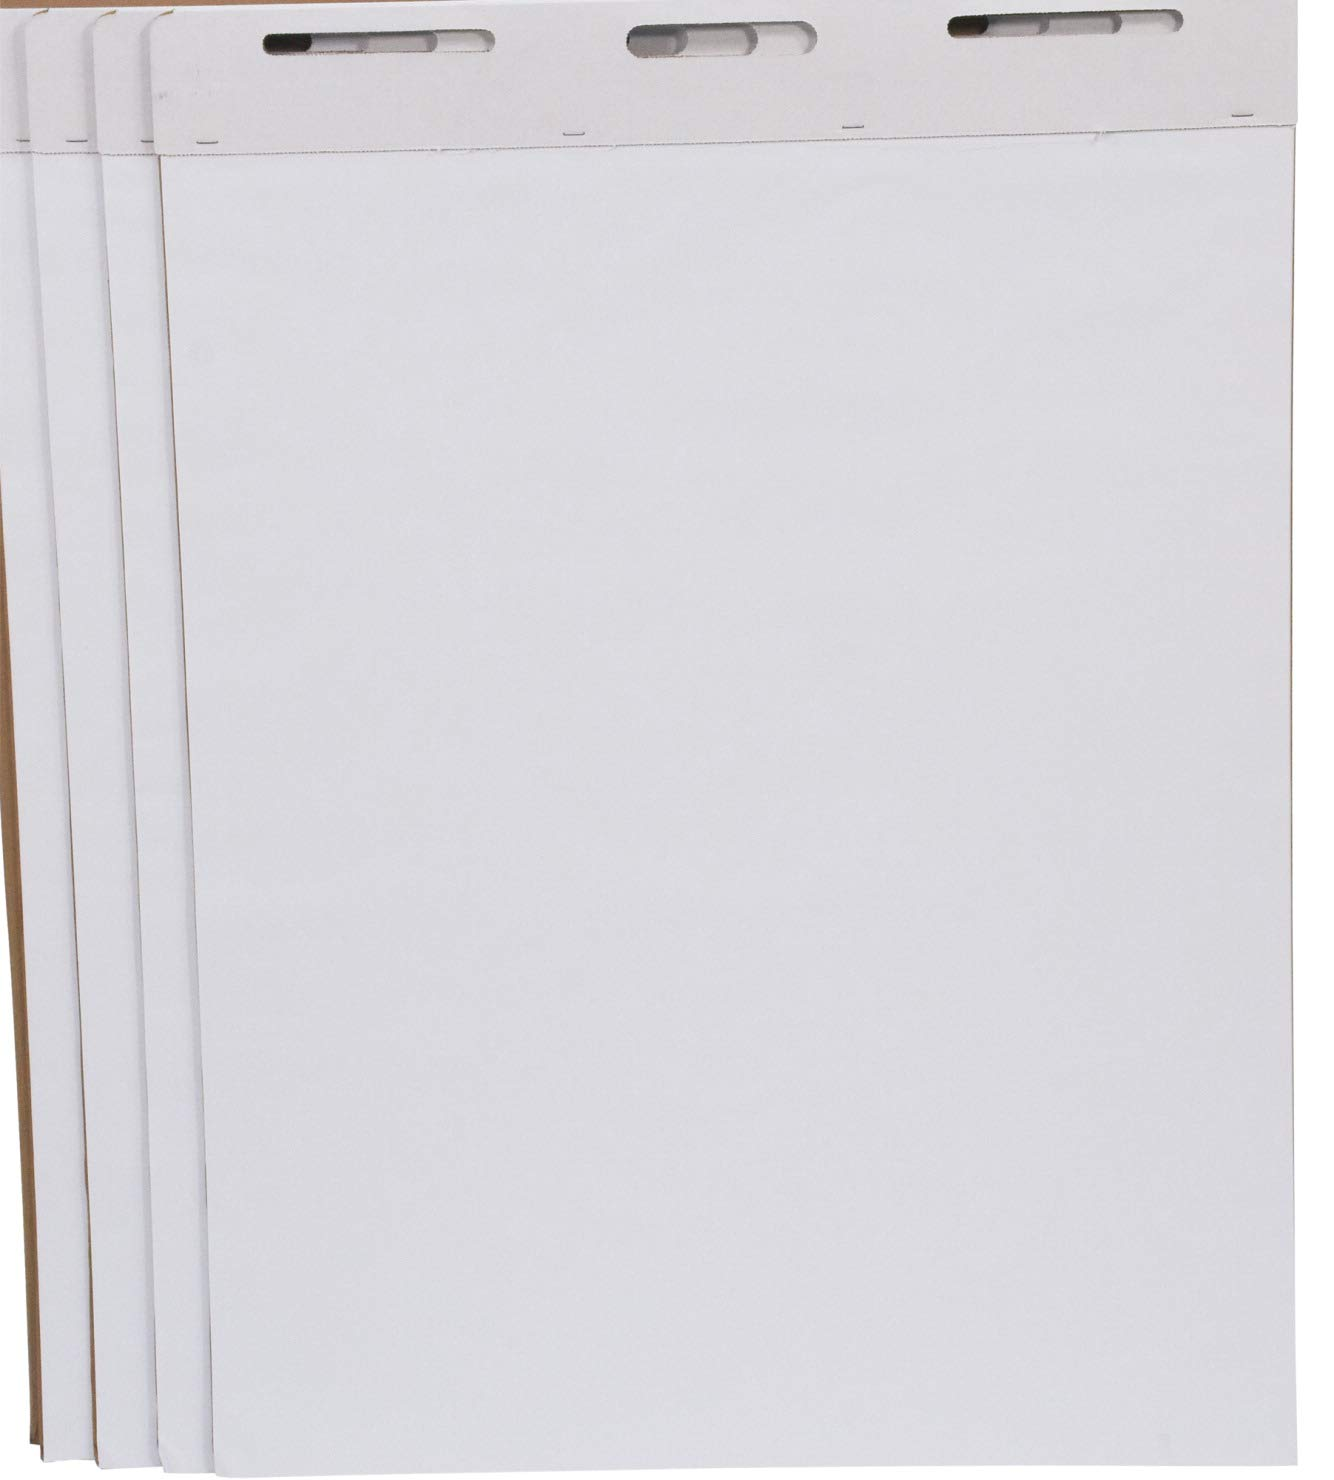 School Smart Unruled Easel Pads, 34 x 27 in, 50 Sheets, White, Pack of 4 by School Smart